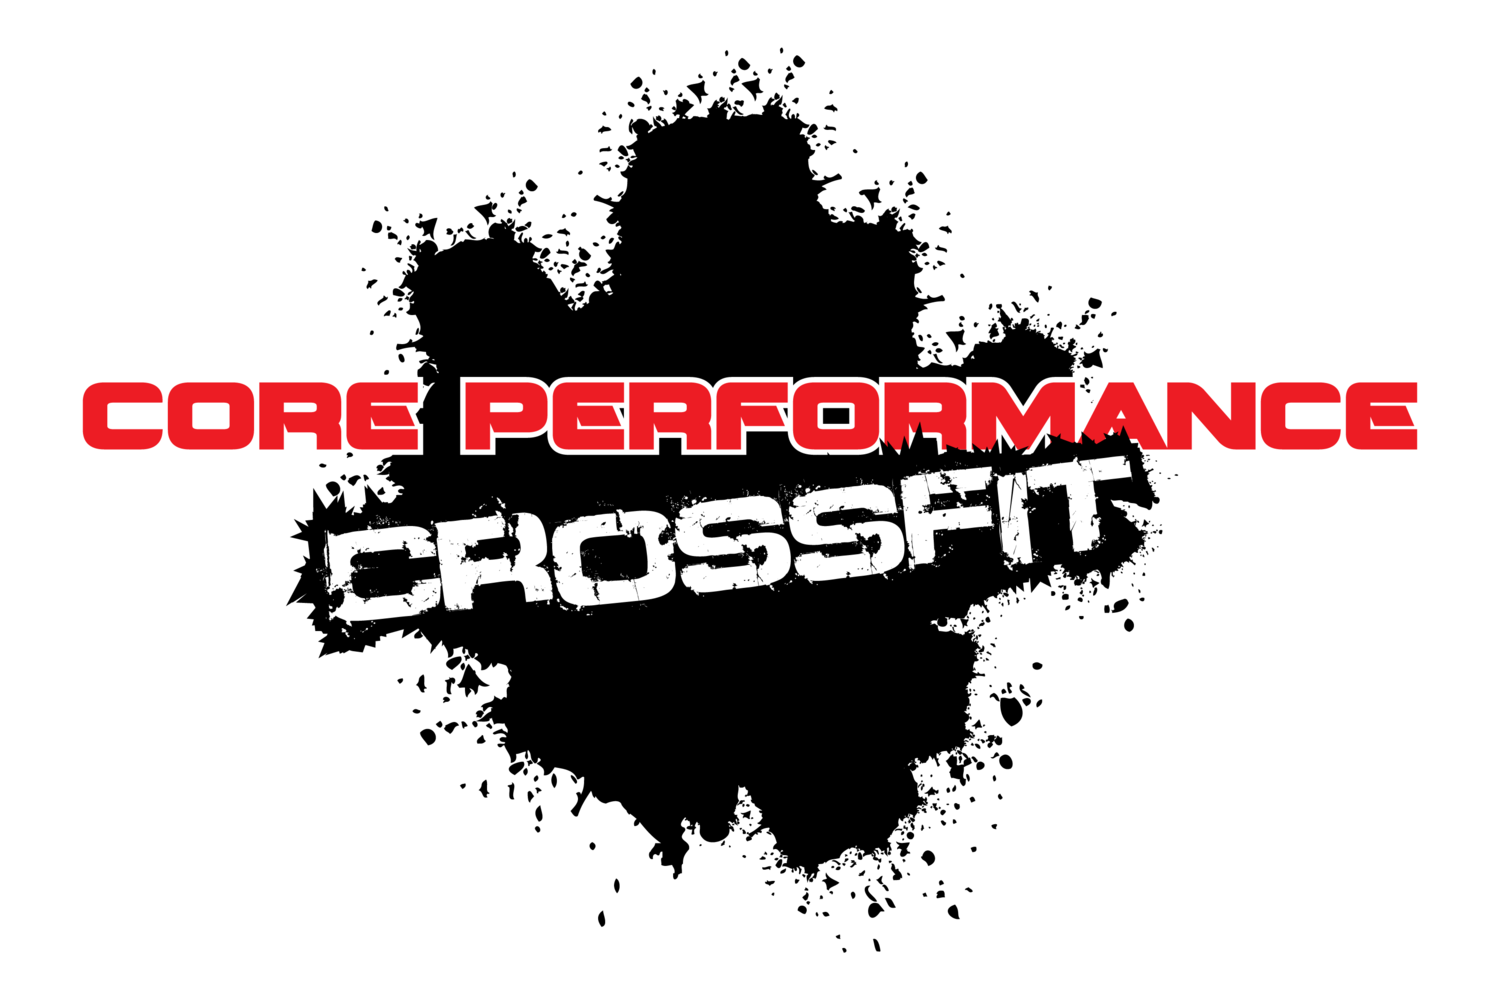 CrossFit Bedford | Core Performance Crossfit